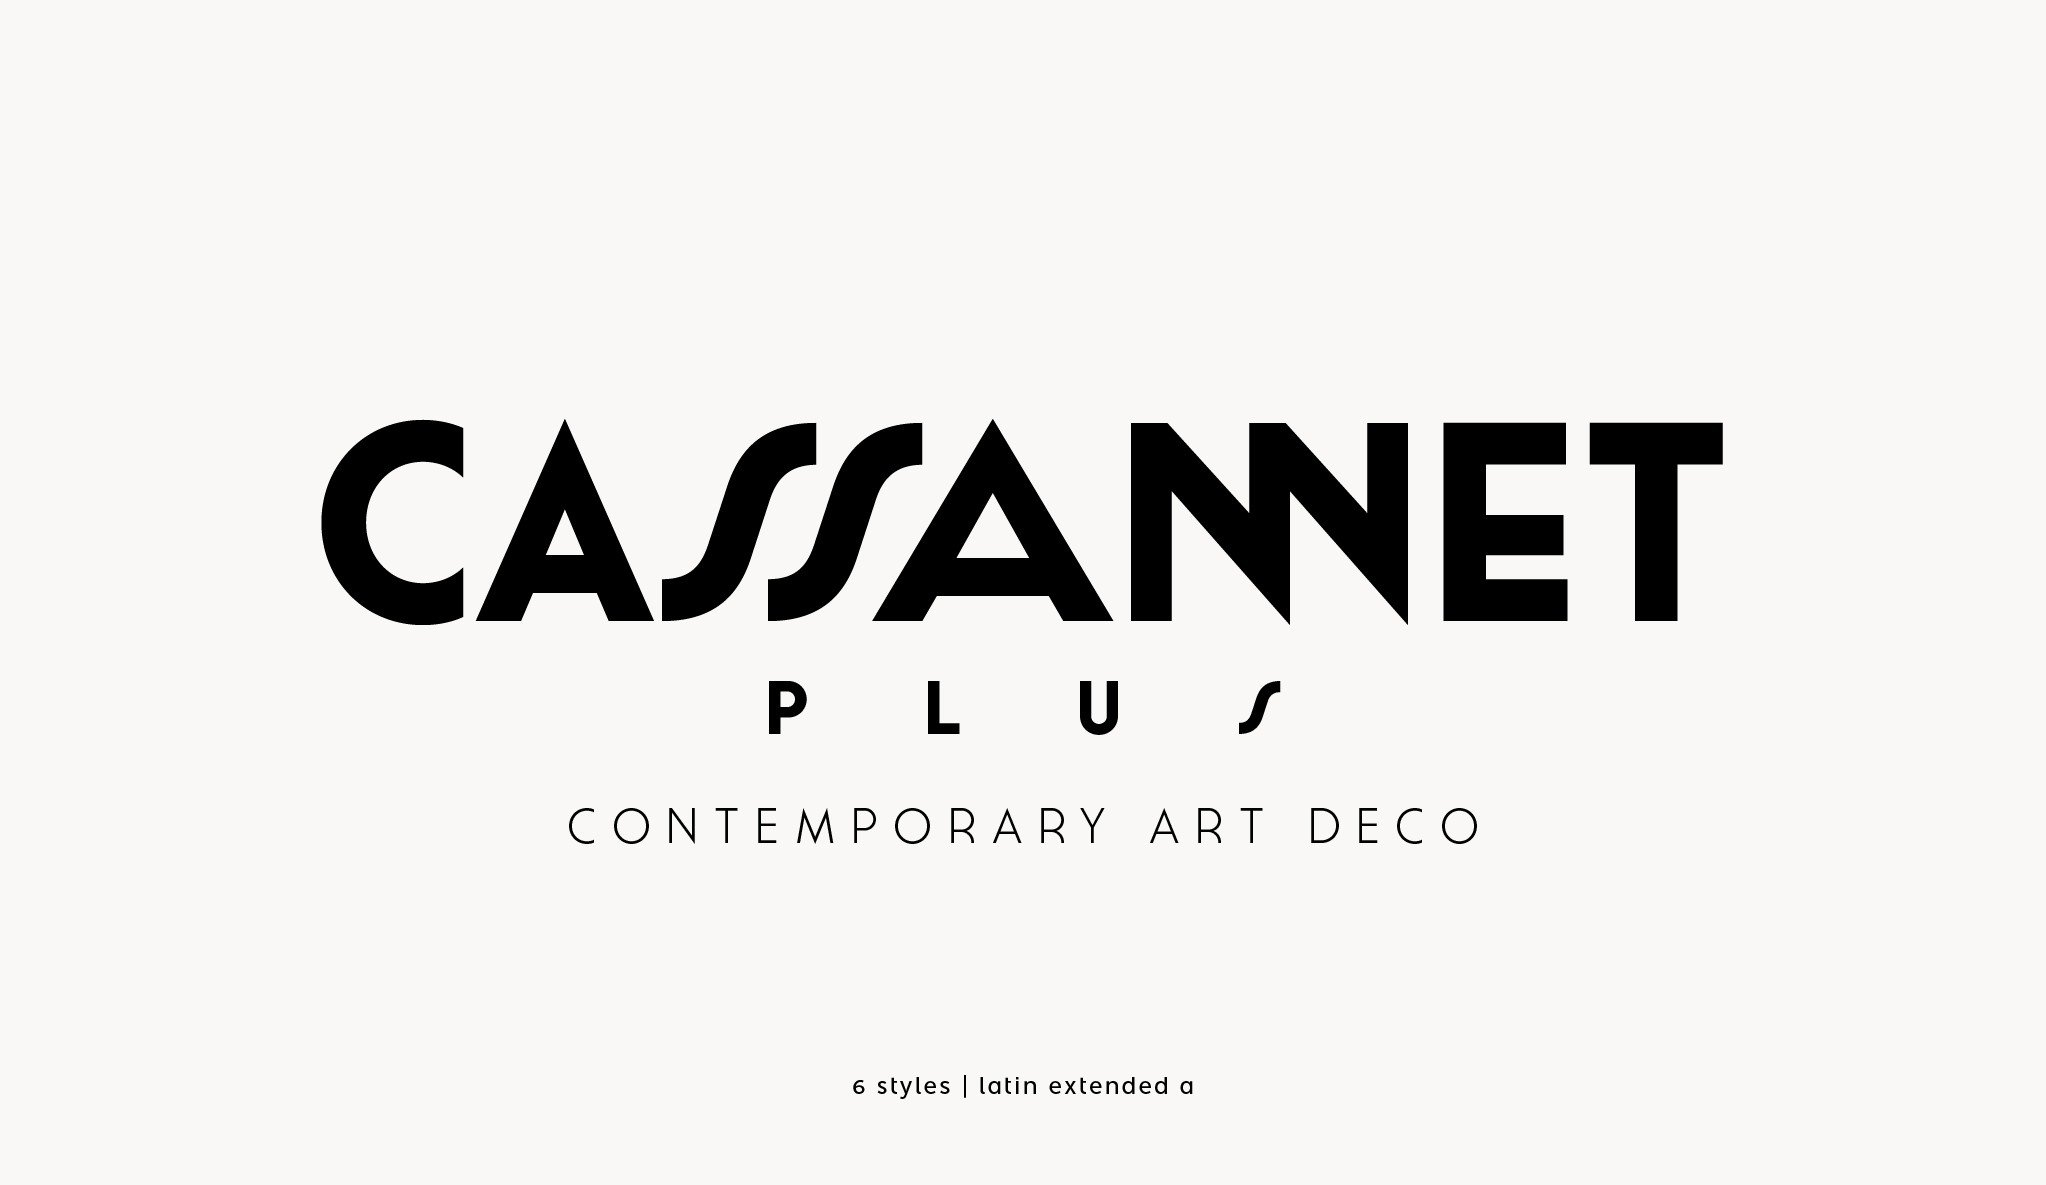 Preview of Cassannet Plus free font